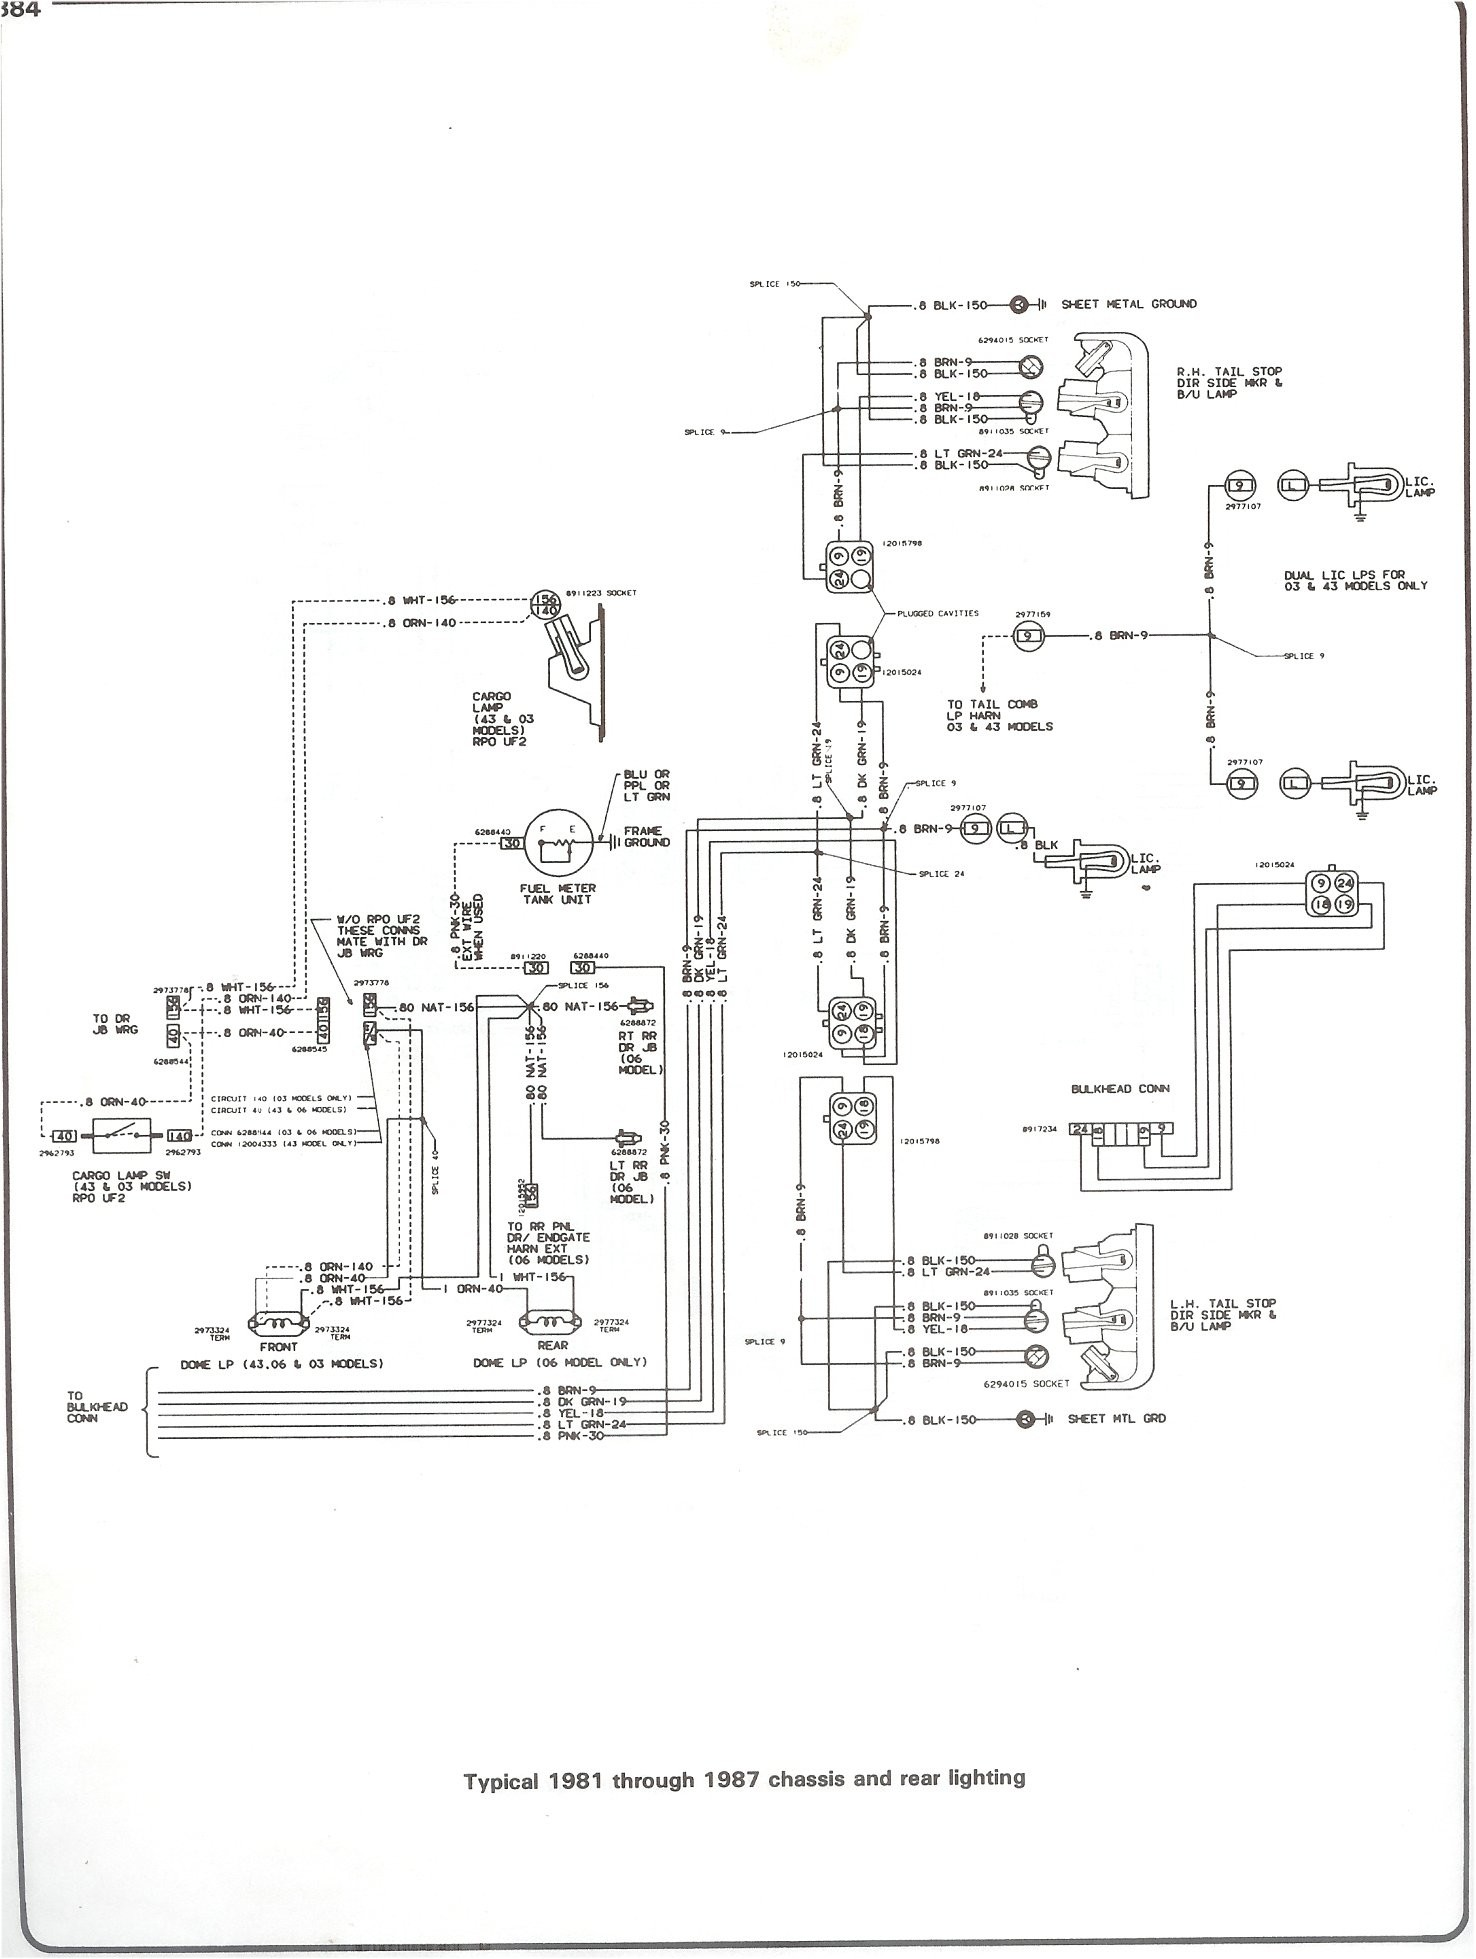 1986 ford F150 Engine Wiring Diagram 85 K10 Wiring Diagrams Hvac Trusted Wiring Diagram Of 1986 ford F150 Engine Wiring Diagram